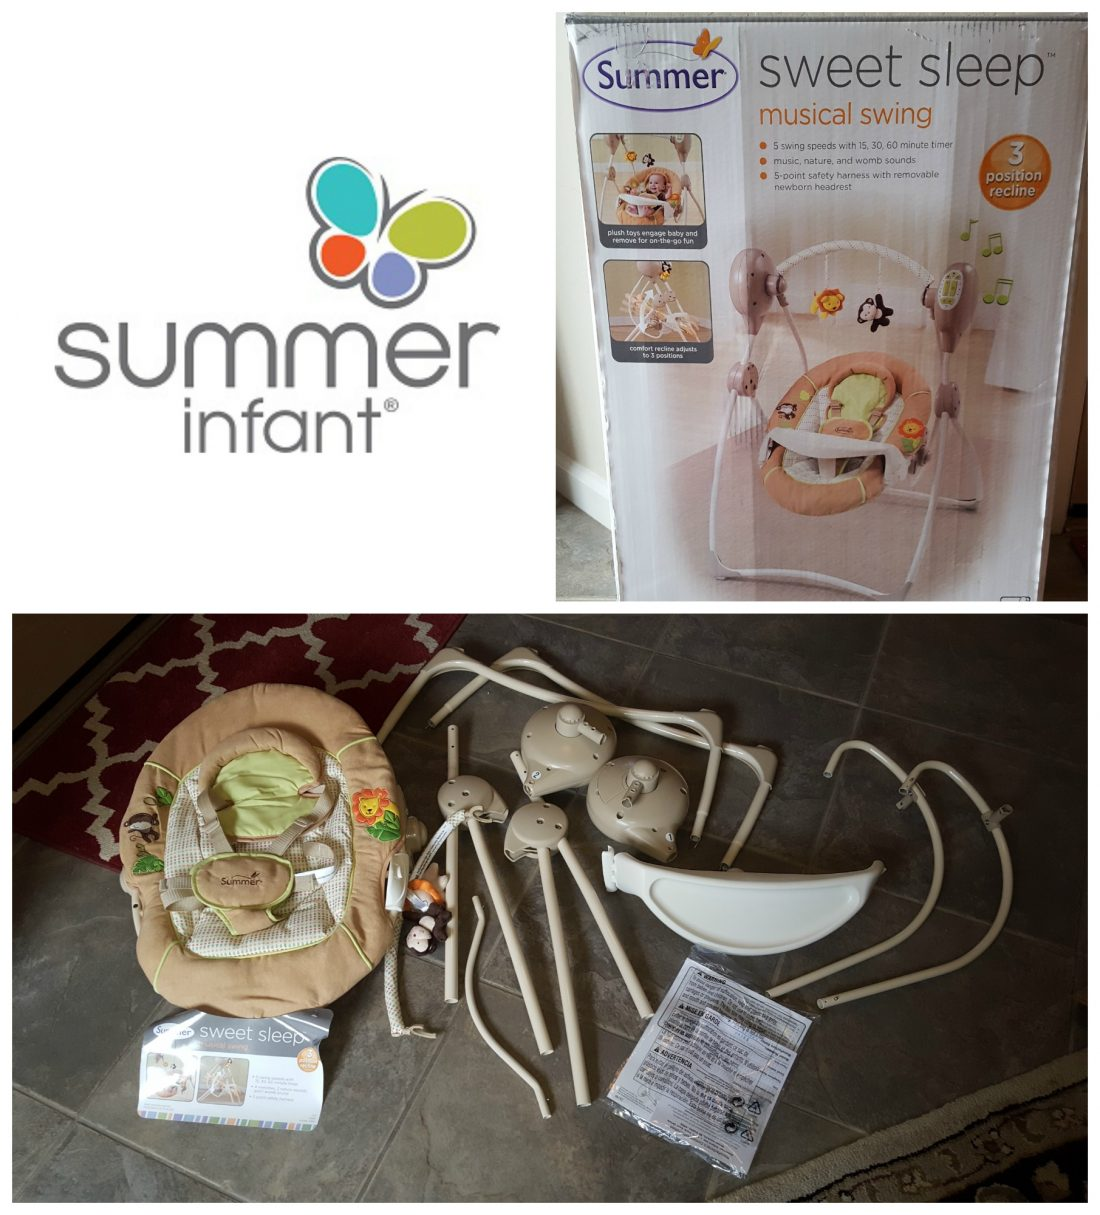 New Must Have Baby Items From Summer Infant! + Sweet Sleep